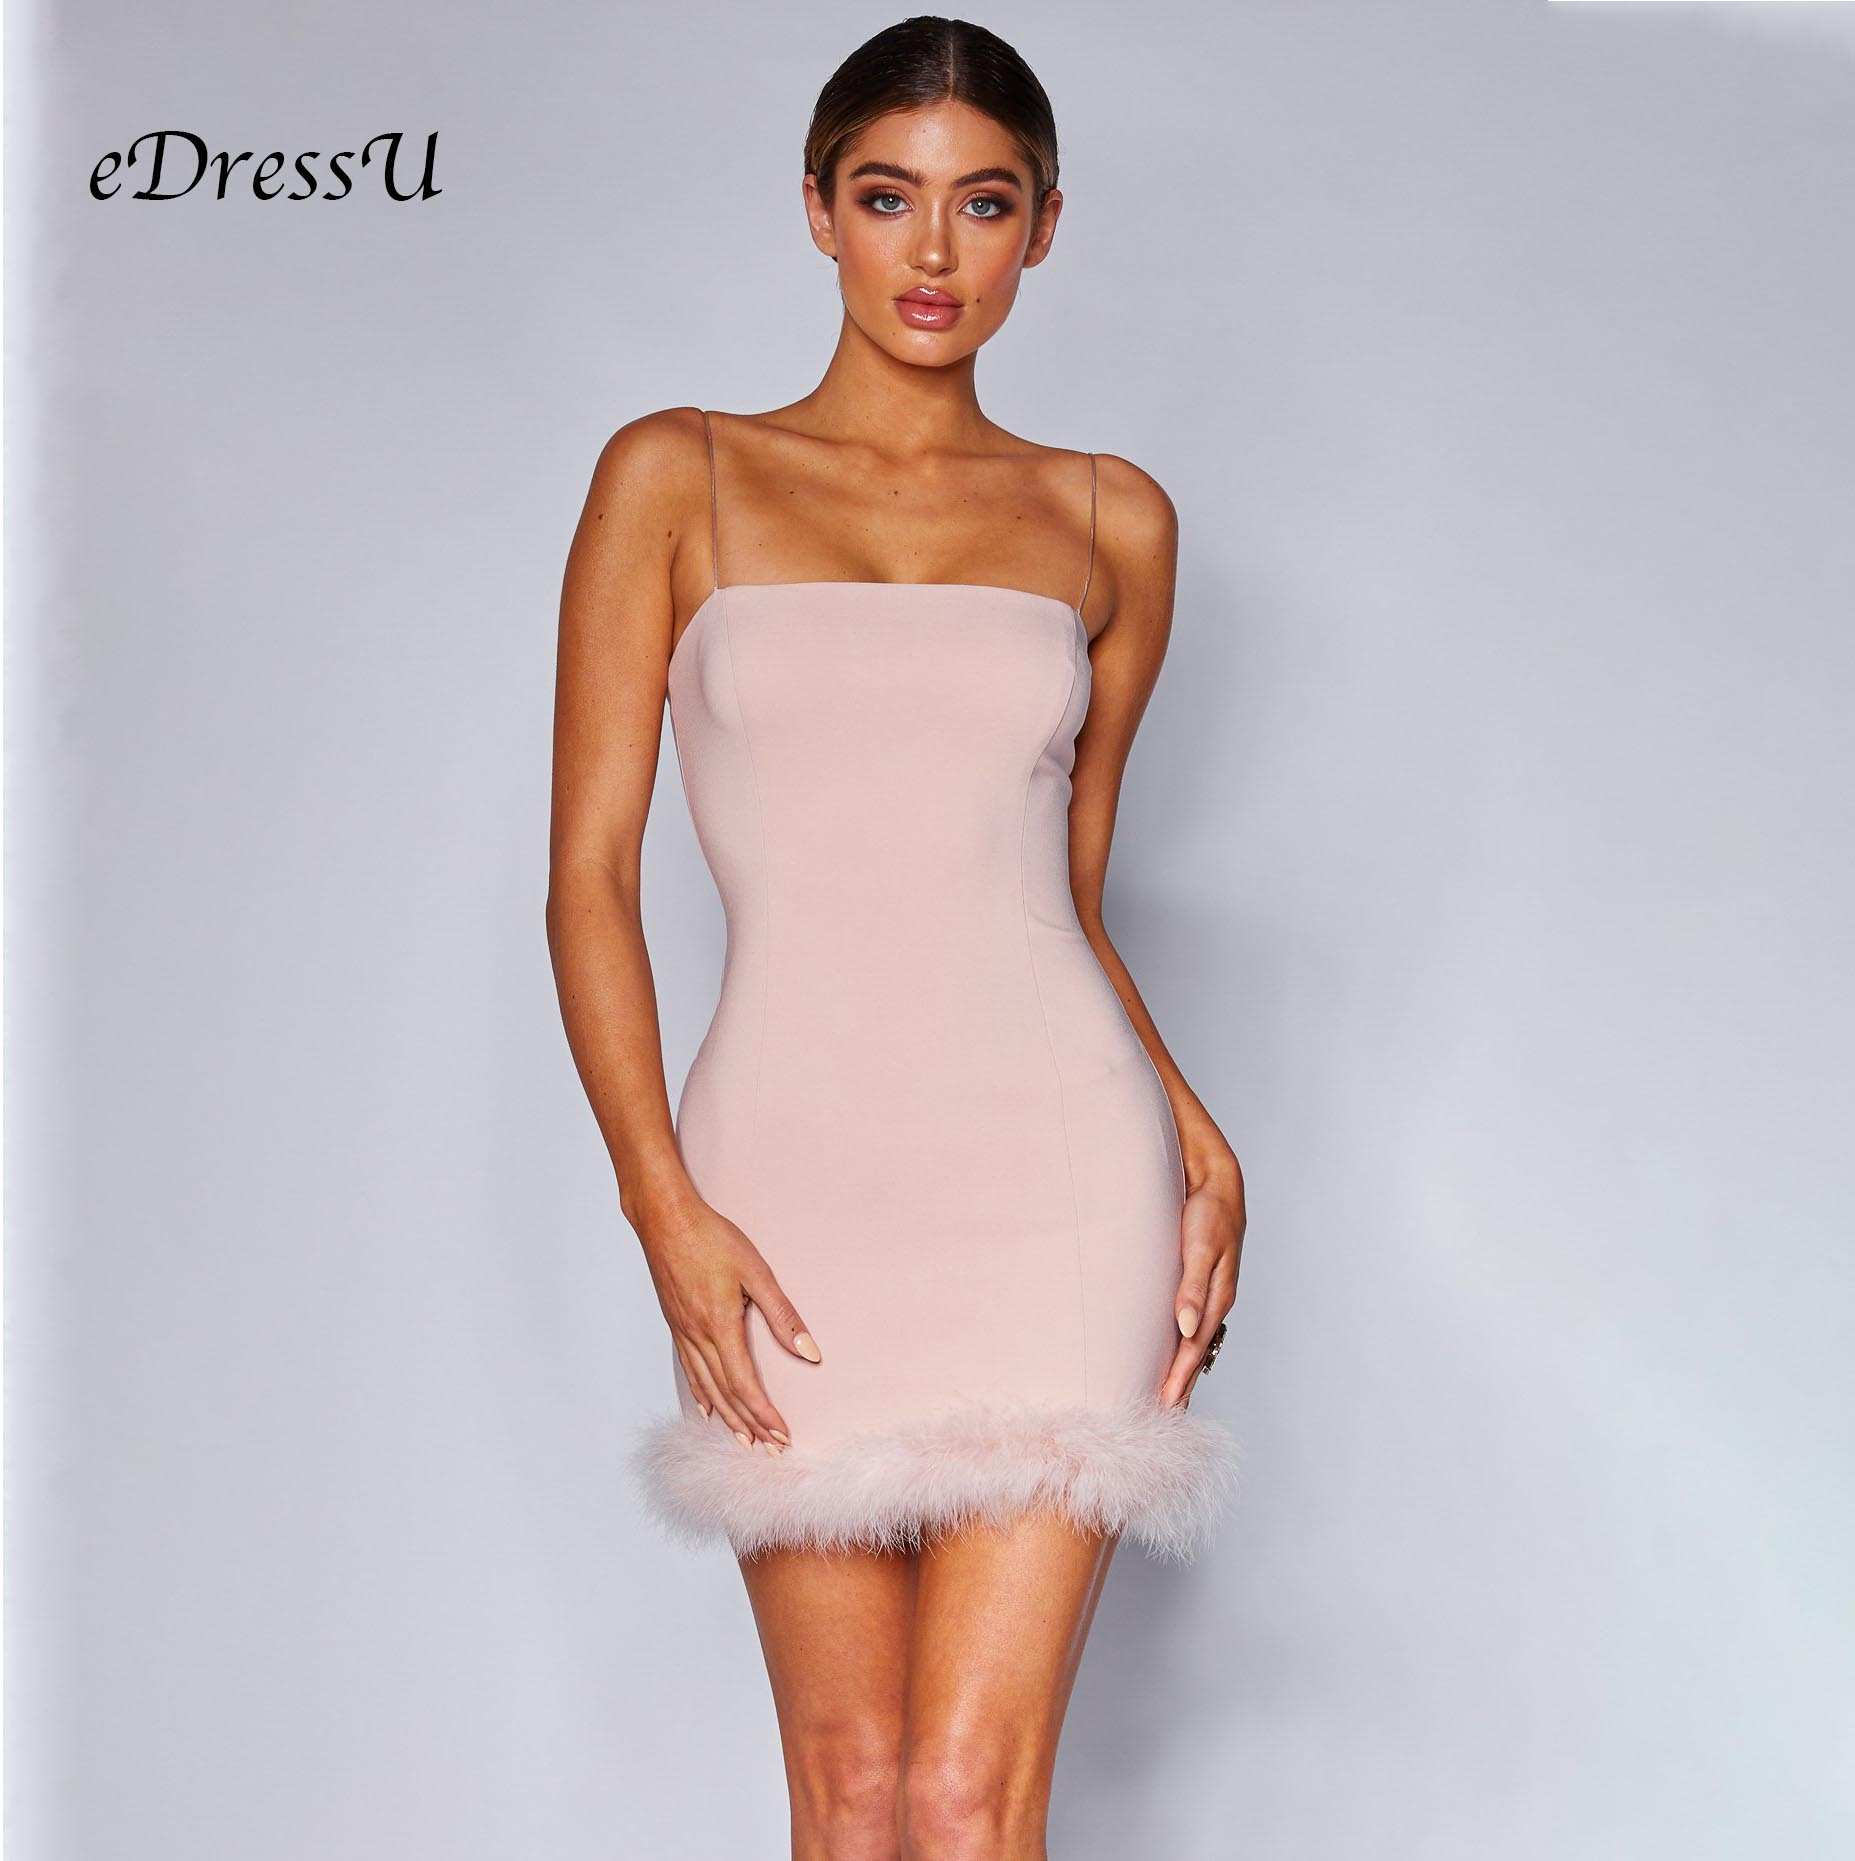 Women New Feature Pink Dress Spaghetti Straps Sexy Club Nightclub Cocktail Party Dress Above Knee Length Dress eDressU MS DZT963